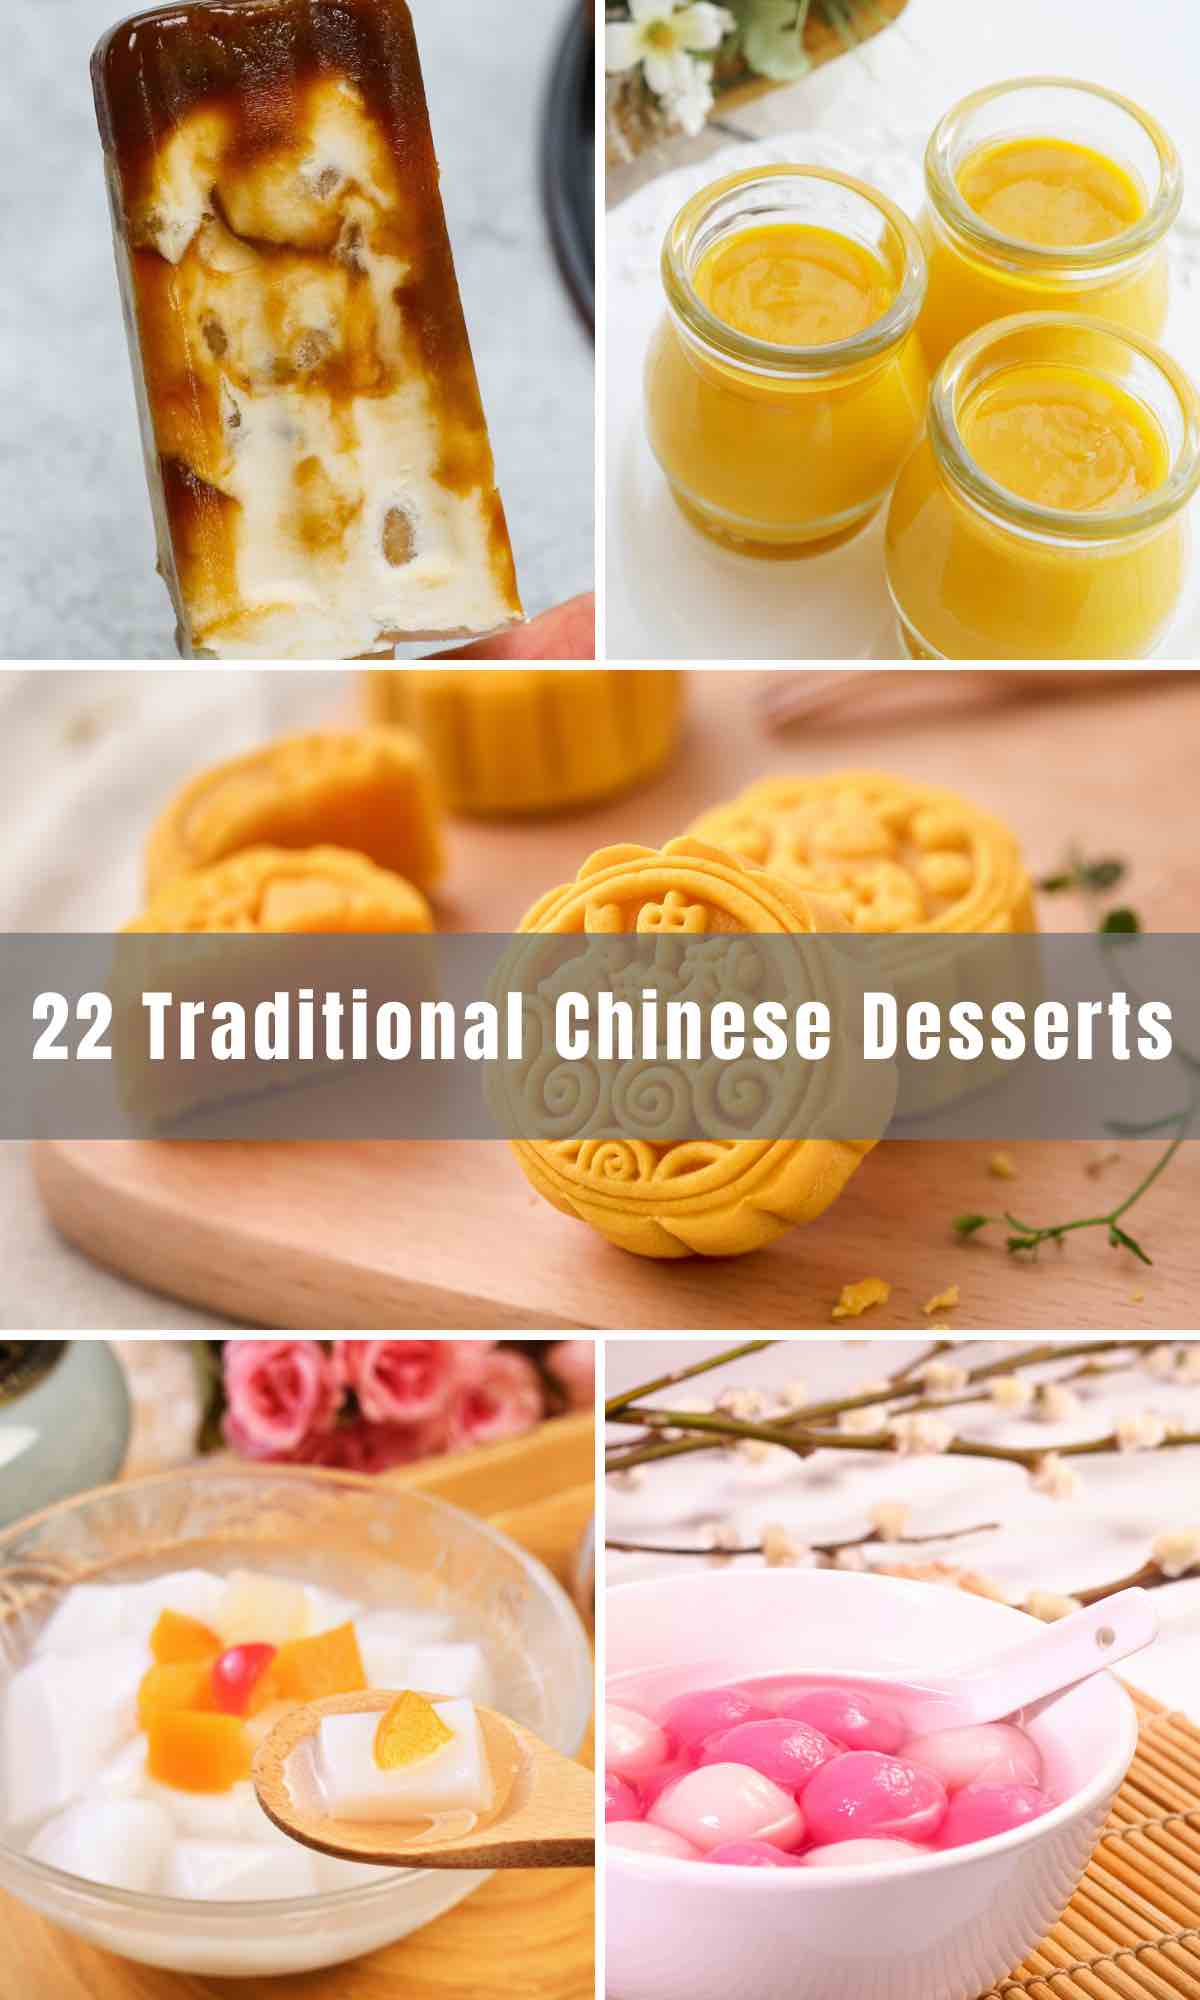 Besides the fortune cookies that come with takeout, there are many delicious Chinese treats that will expand your palate. We've rounded up 22 Traditional Chinese Desserts, from Red Bean Buns to Bubble Tea, Boba Ice Cream, Moon Cake and more.